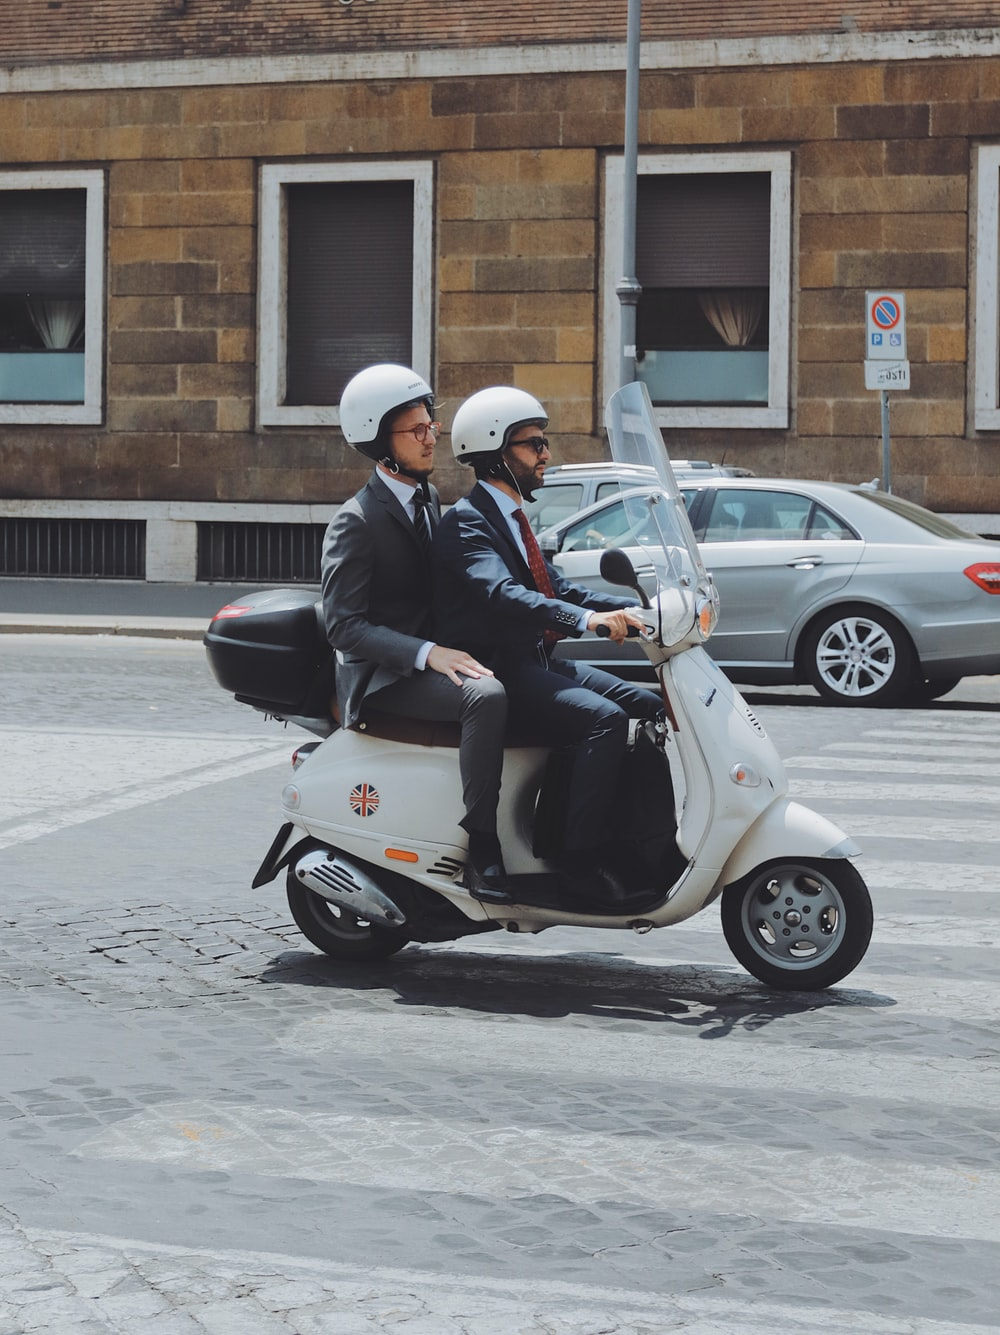 two men riding on motor scooter